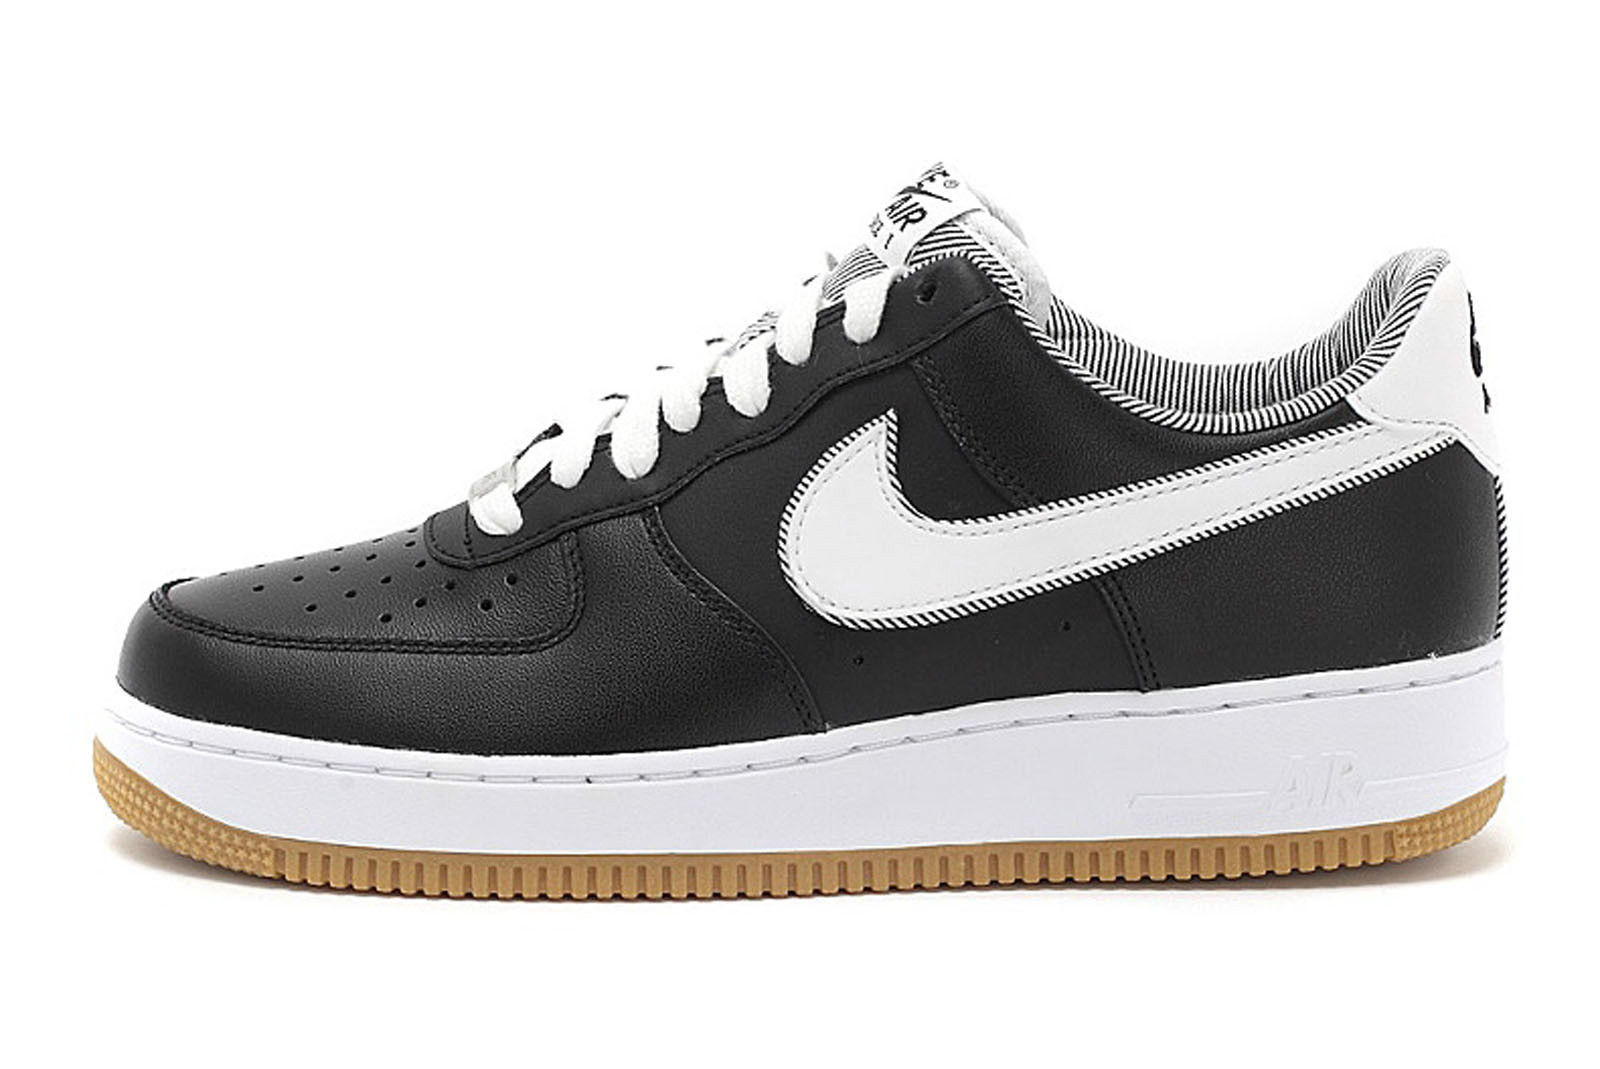 nike air force 1 low black white gum sole collector. Black Bedroom Furniture Sets. Home Design Ideas